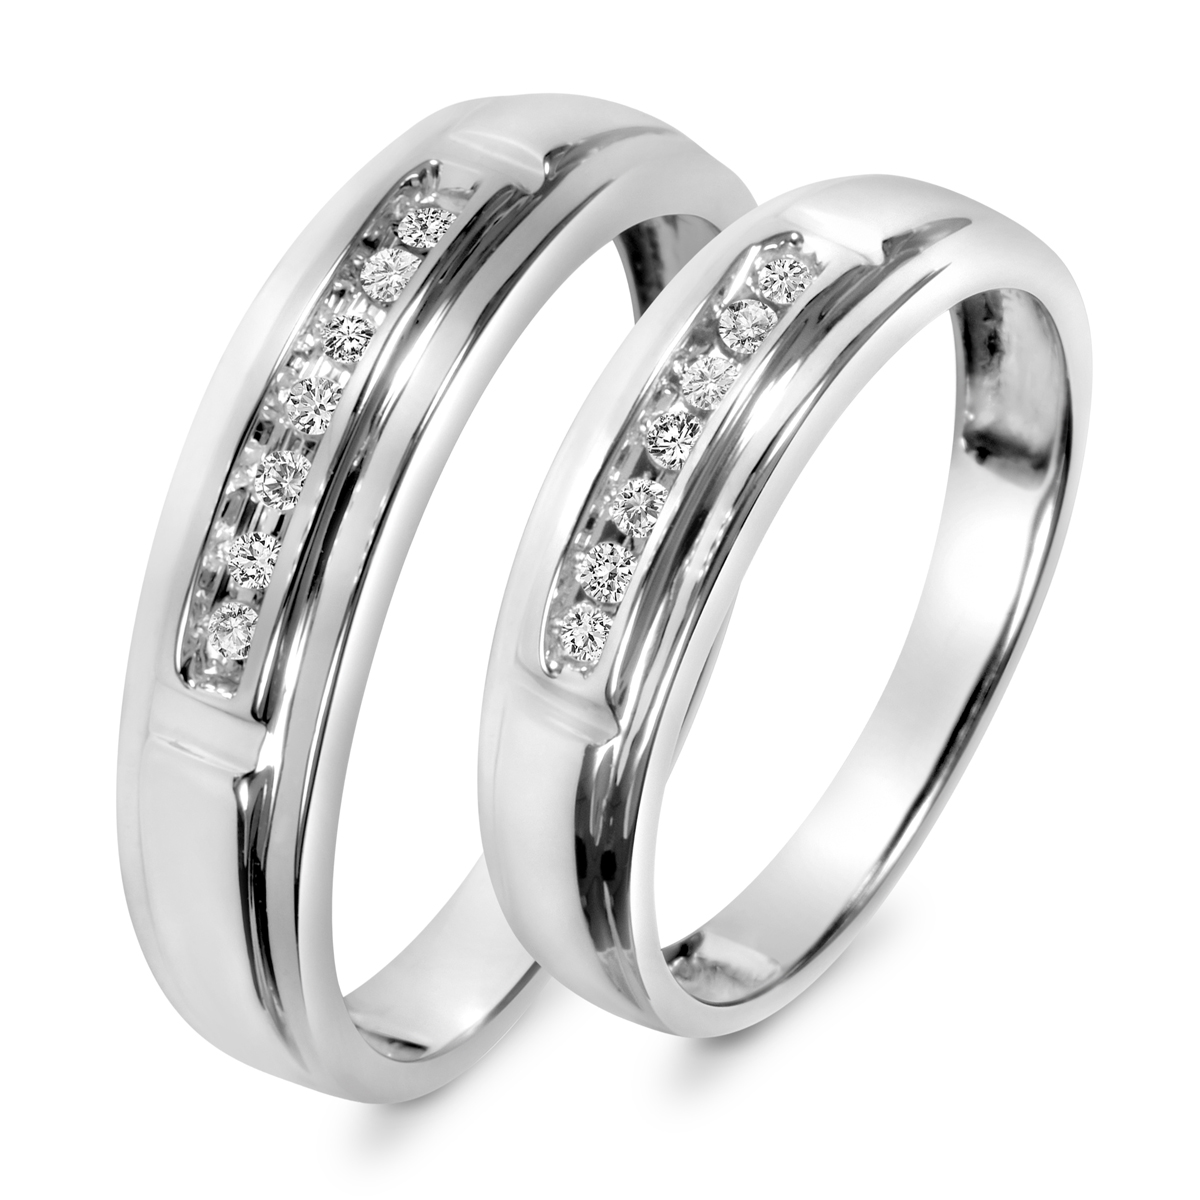 His And Hers Matching Wedding Bands Cheap.1 8 Carat T W Diamond His And Hers Wedding Band Set 10k White Gold